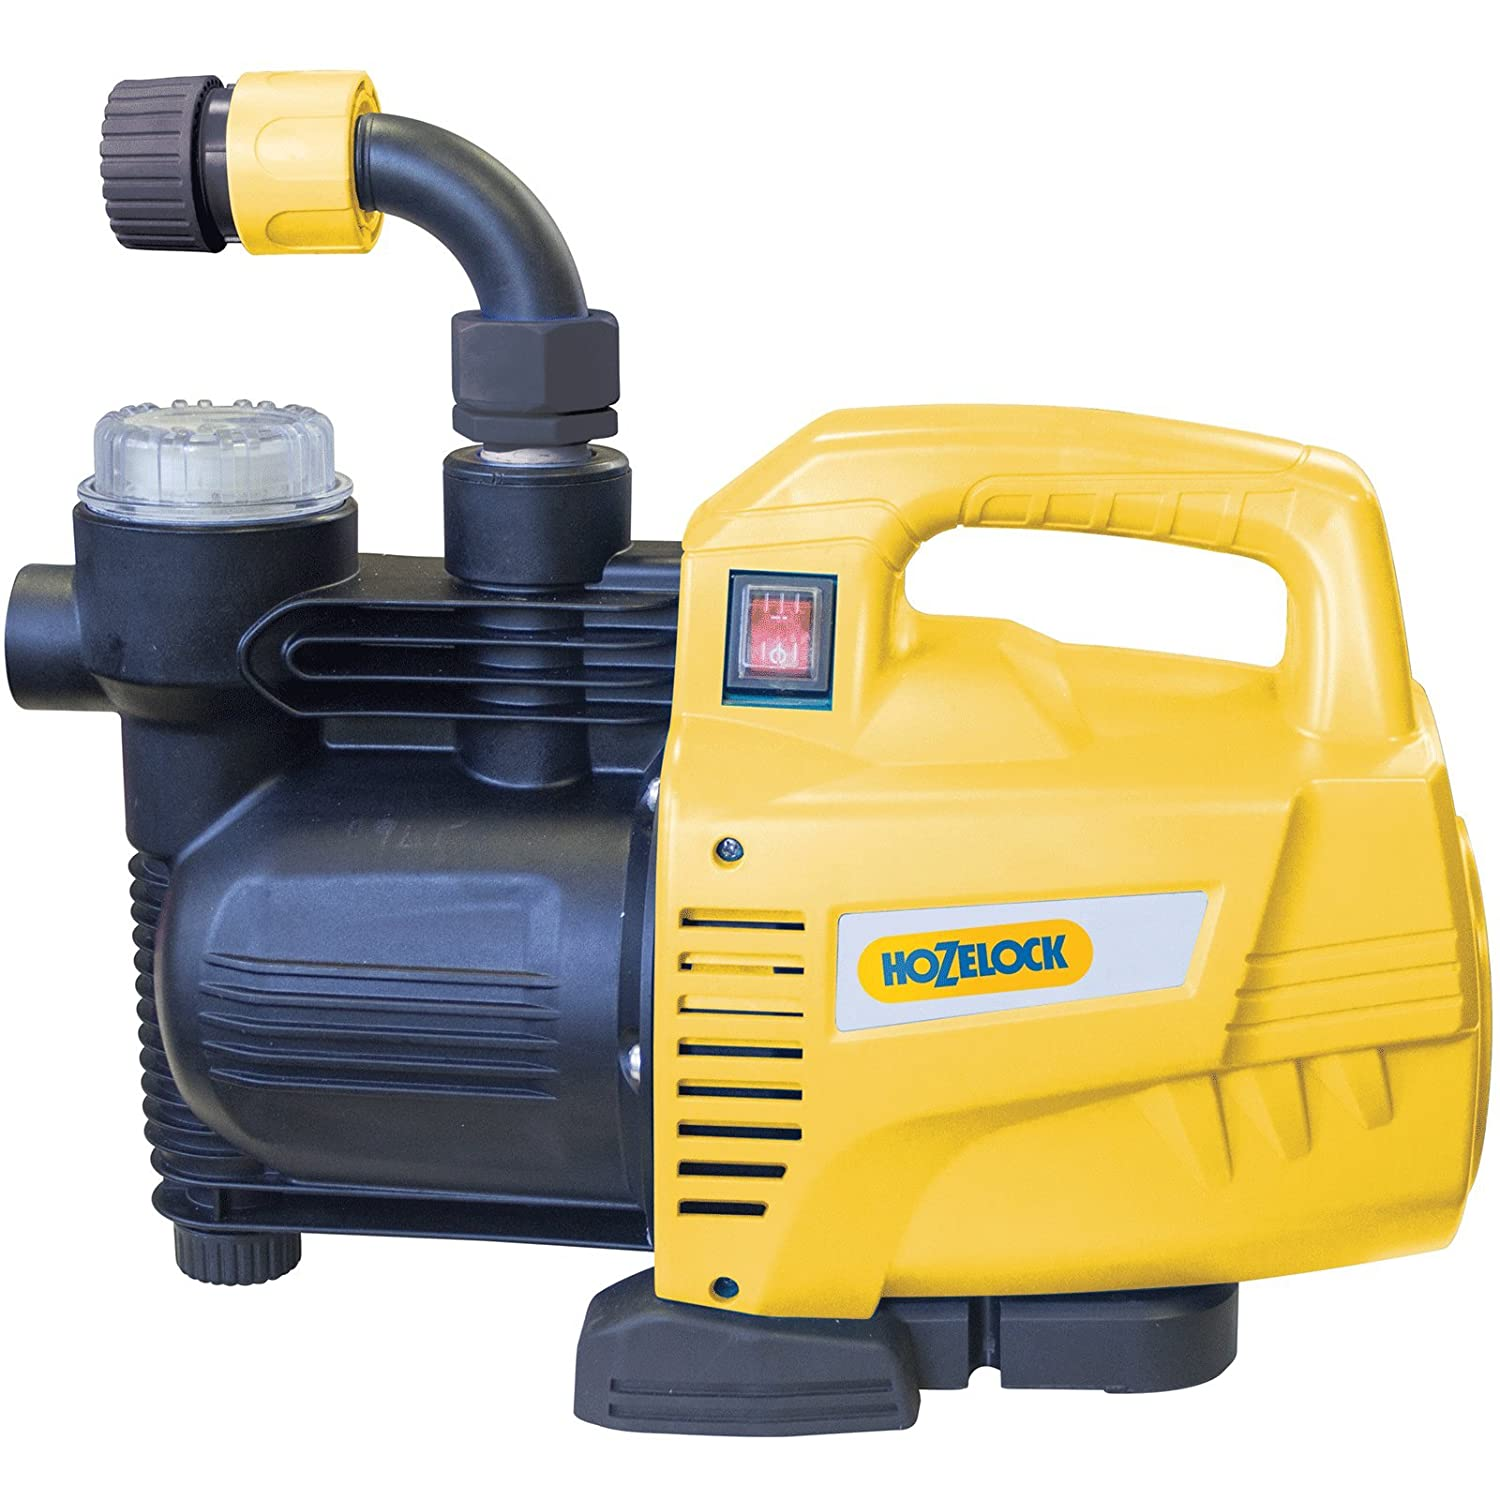 Hozelock 7606 0000 Garden Jet Pump Hozelock Ltd